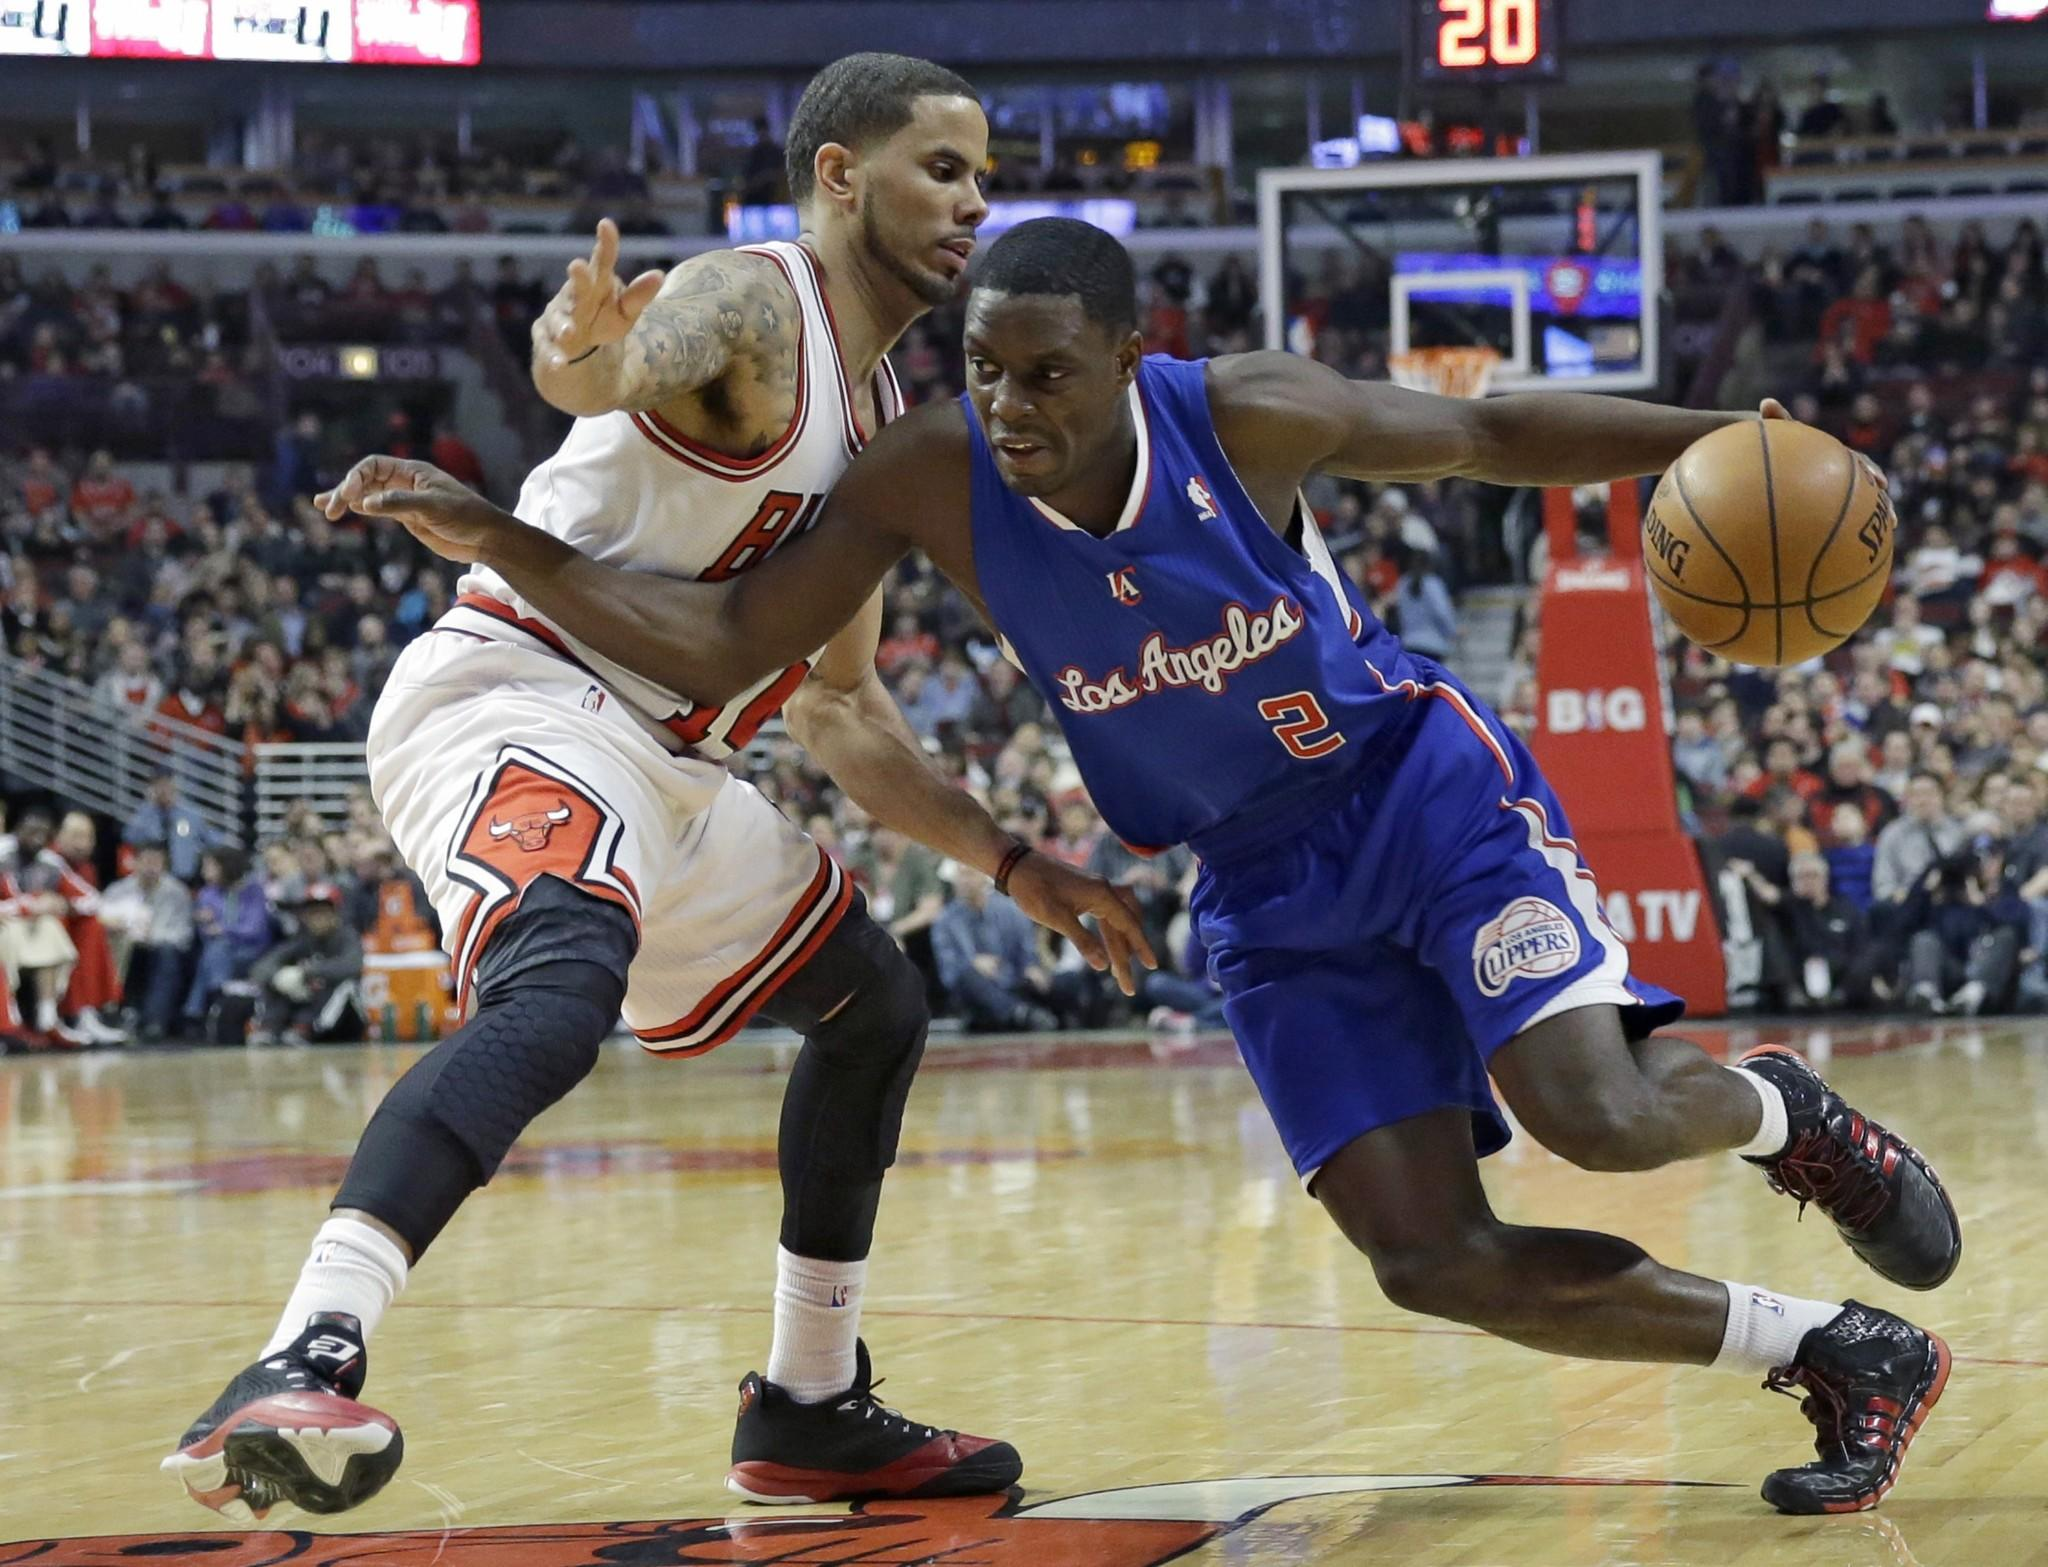 Darren Collison drives against Chicago's D.J. Augustin during the first half of the Clippers' 112-95 win Friday over the Bulls. Collison had 17 points with four assists.